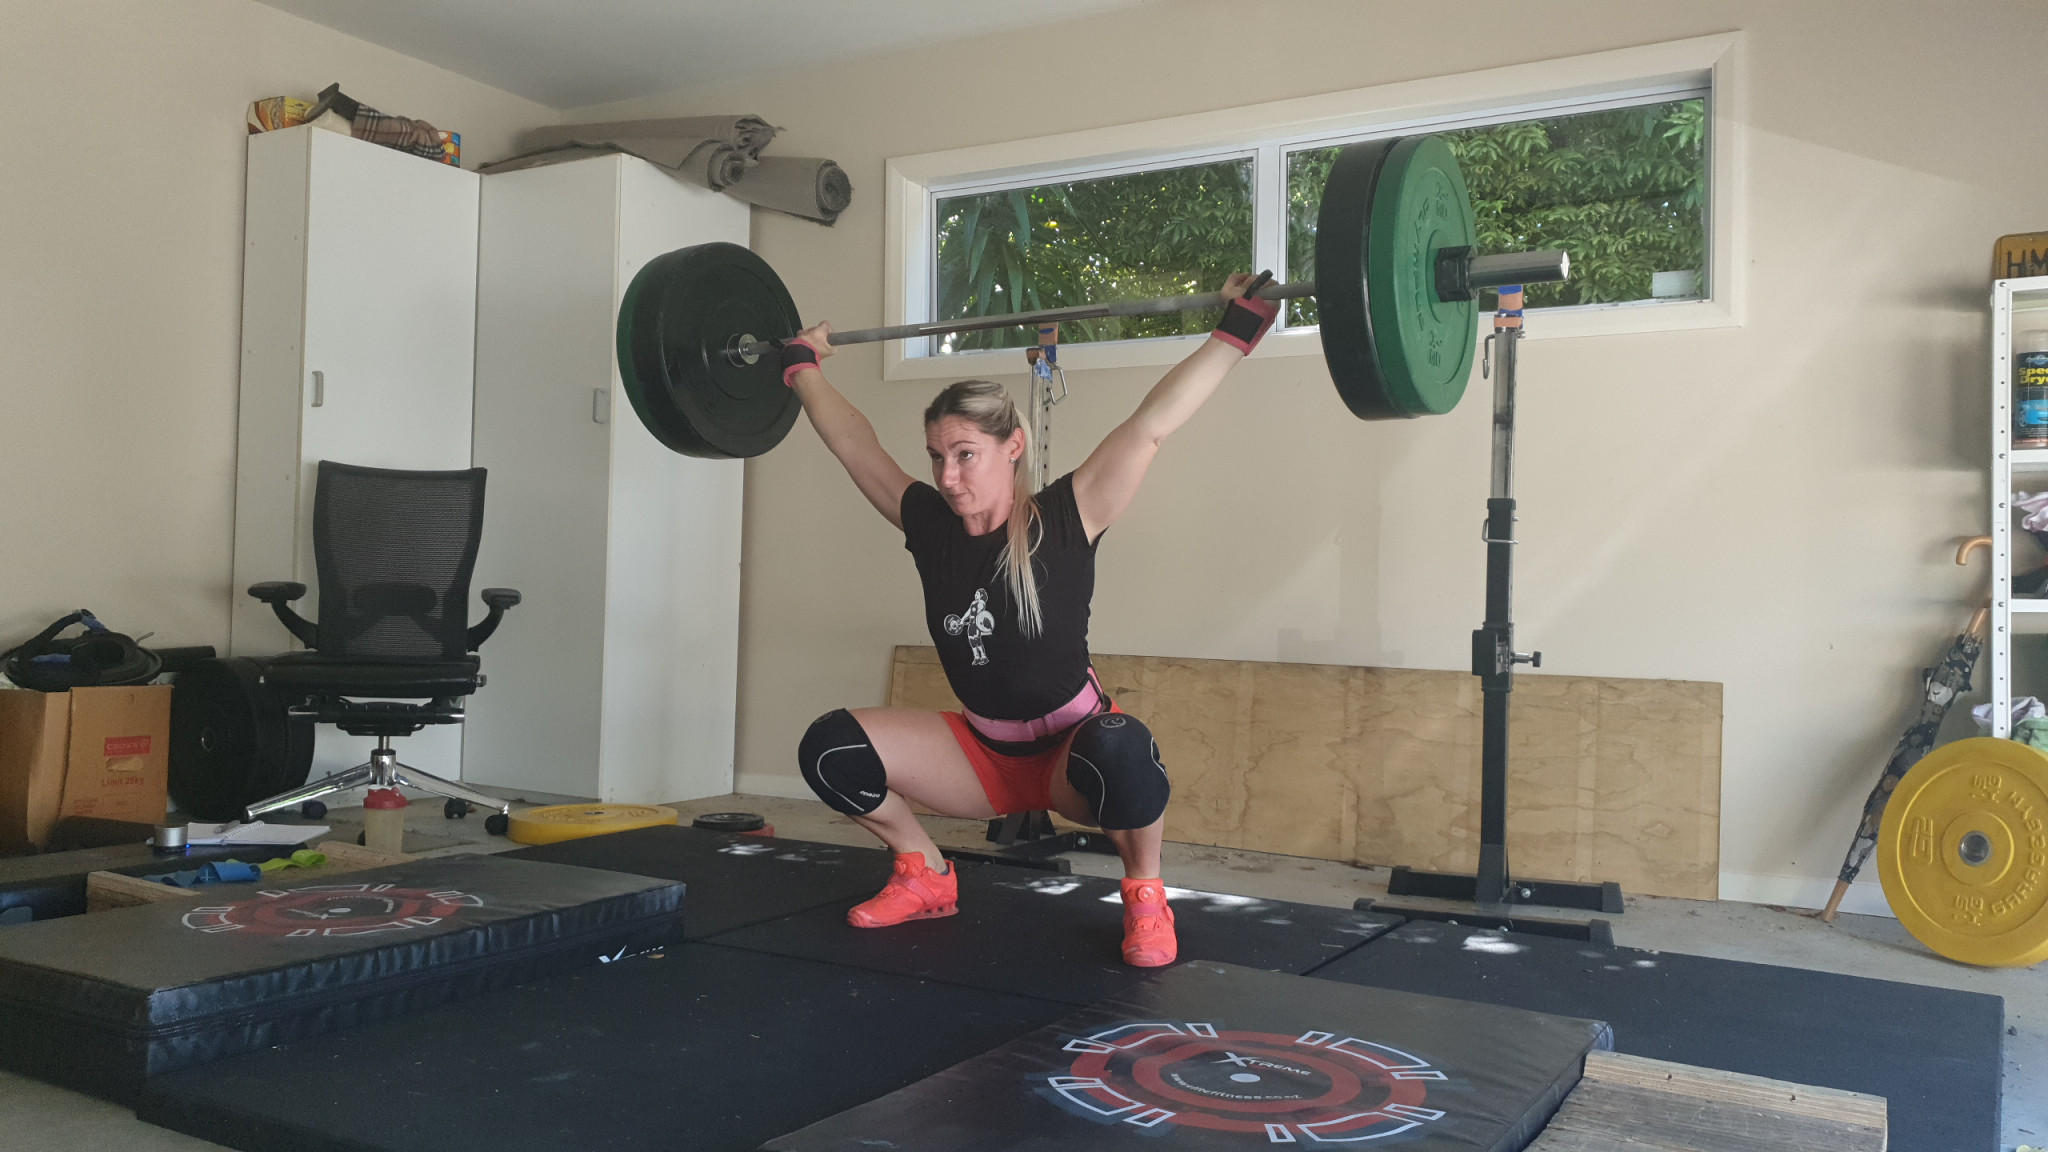 """South African weightlifter barred from travel by COVID-19 warns """"my Olympic dream is at risk"""""""